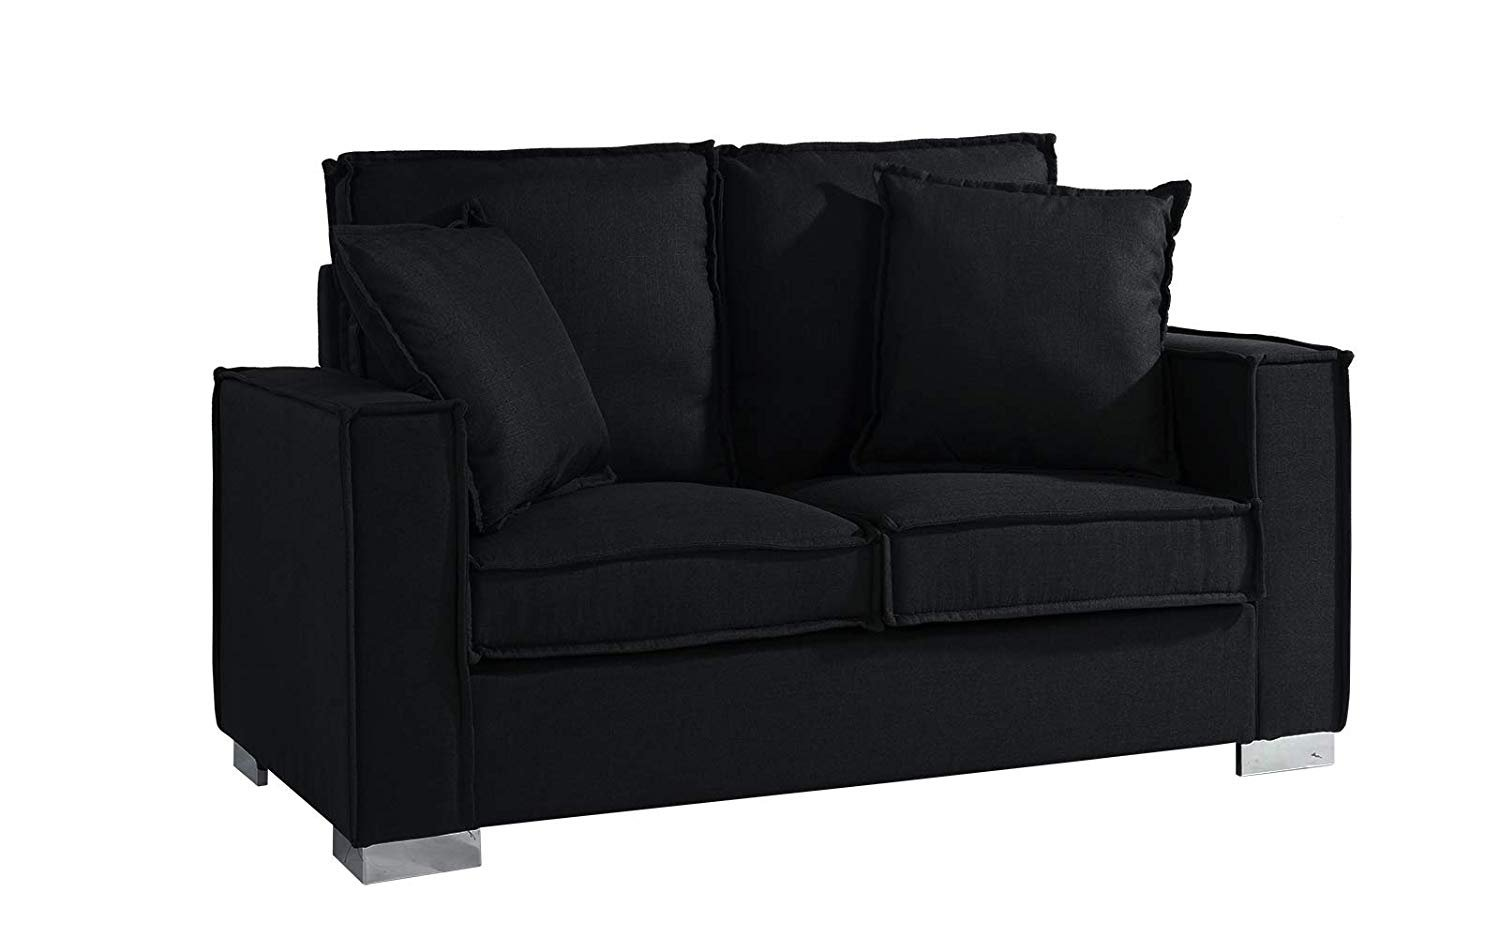 Marvelous Classic Linen Fabric Sofa, Small Space Loveseat Couch (Black)